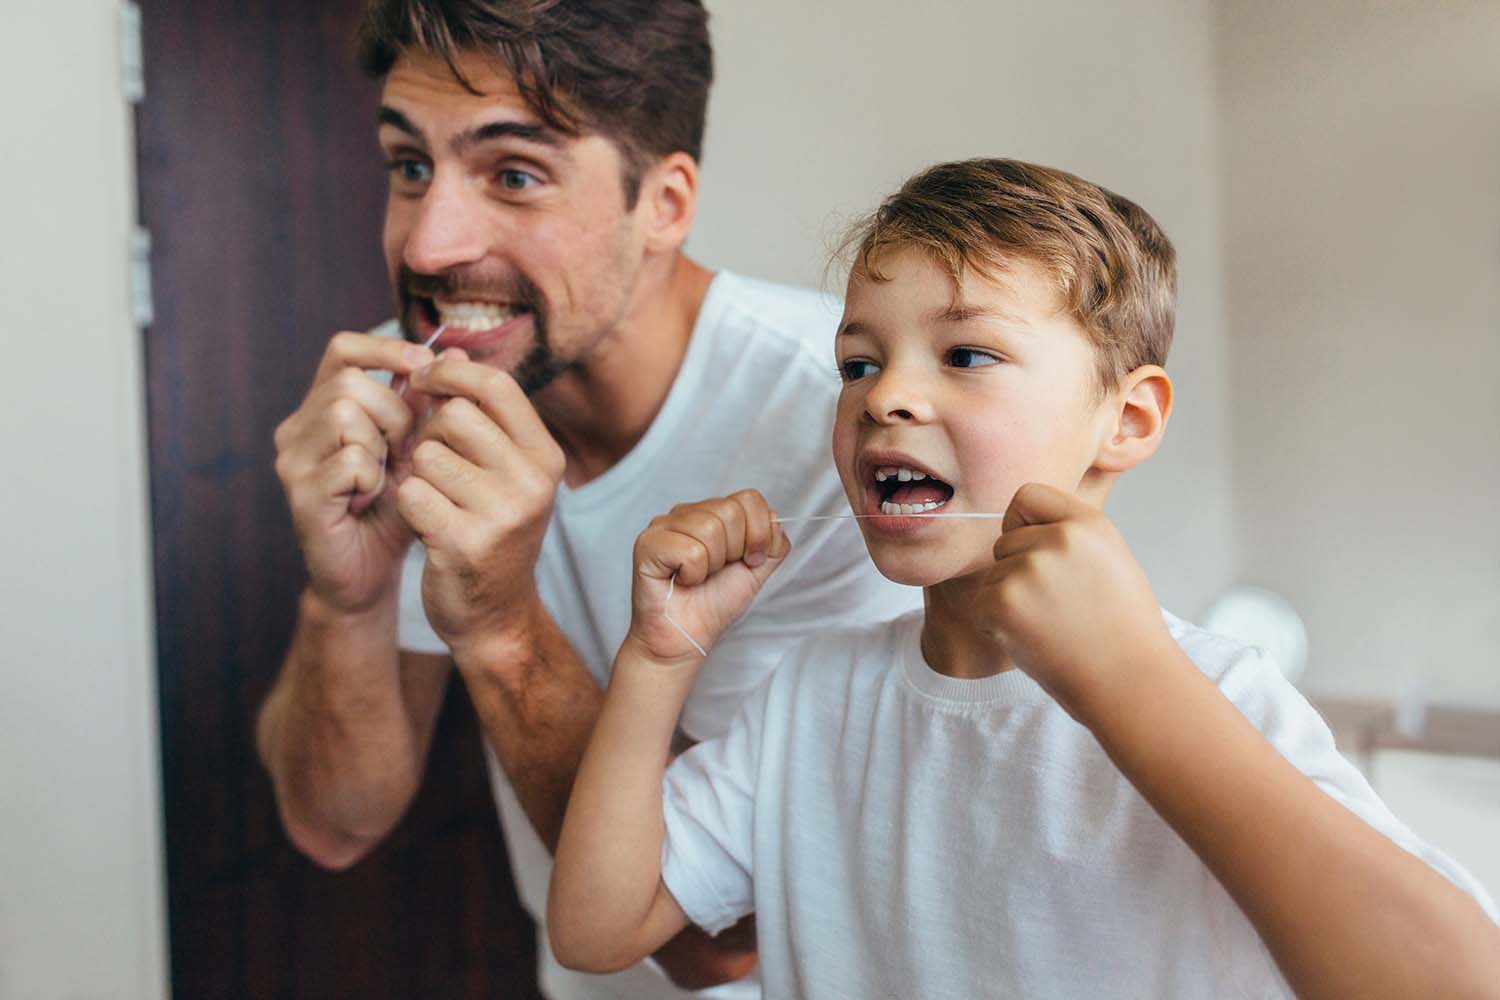 A father and son, patients at West Richland Family dental, floss together during their daily home oral care routine.